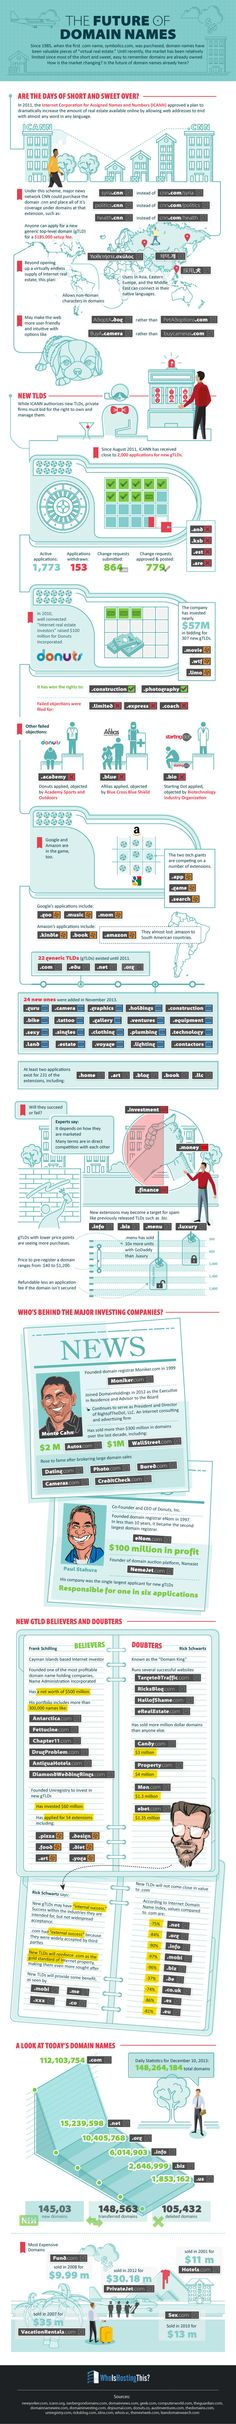 The Future of Domain Names #infographic